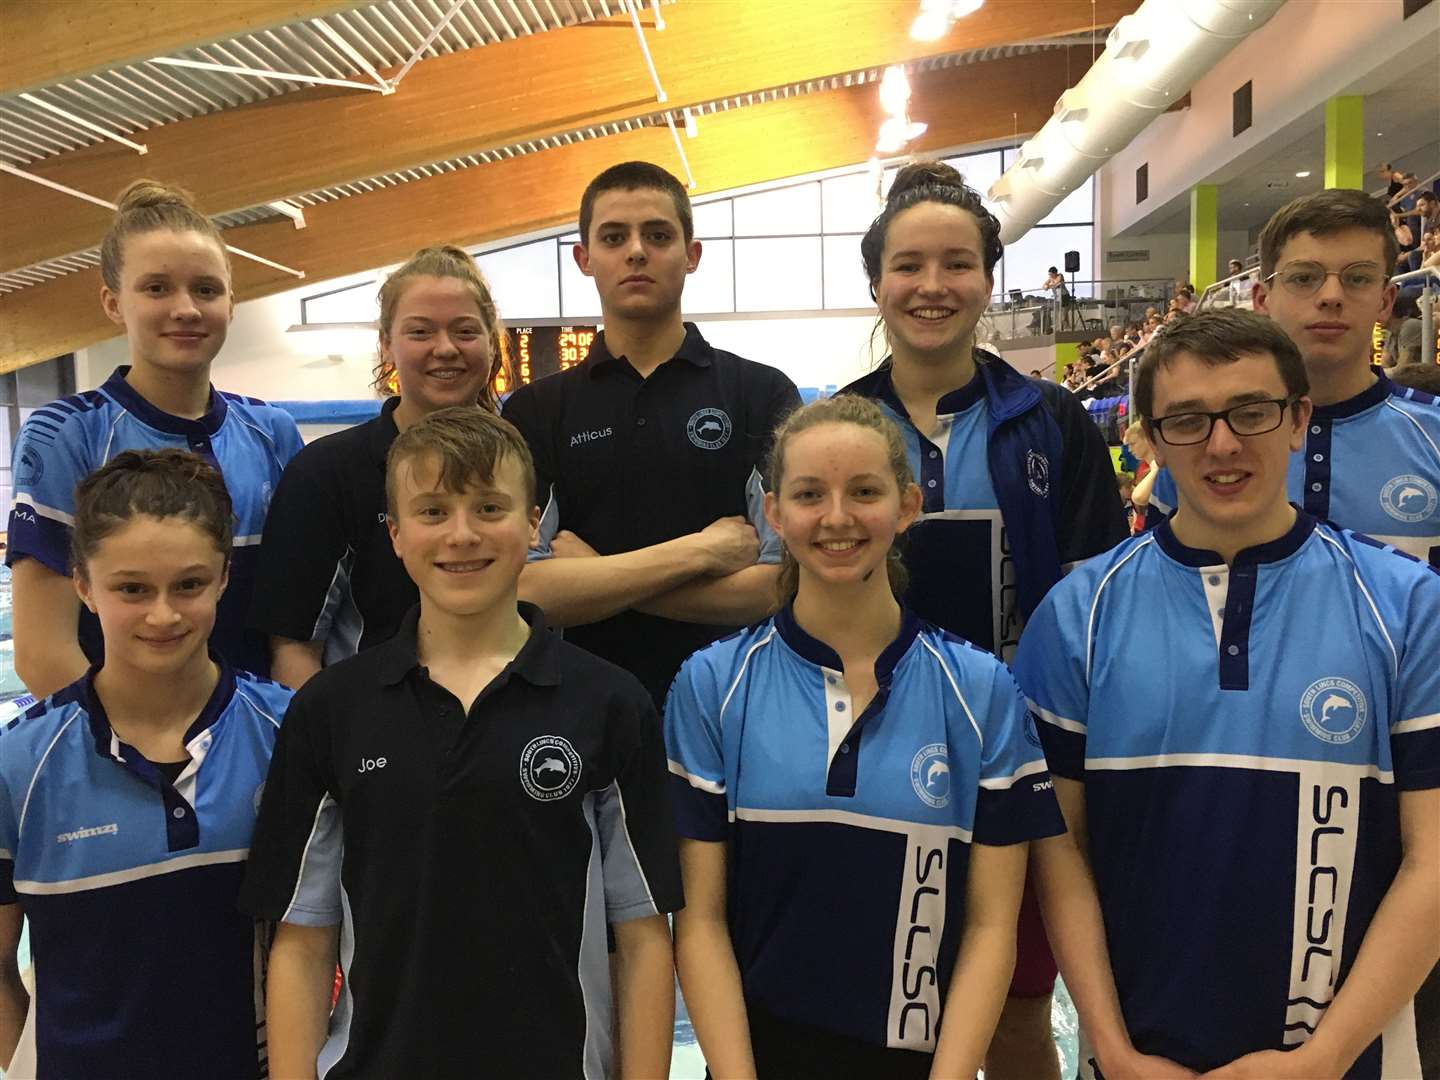 South Lincs Swimming Club (42237381)